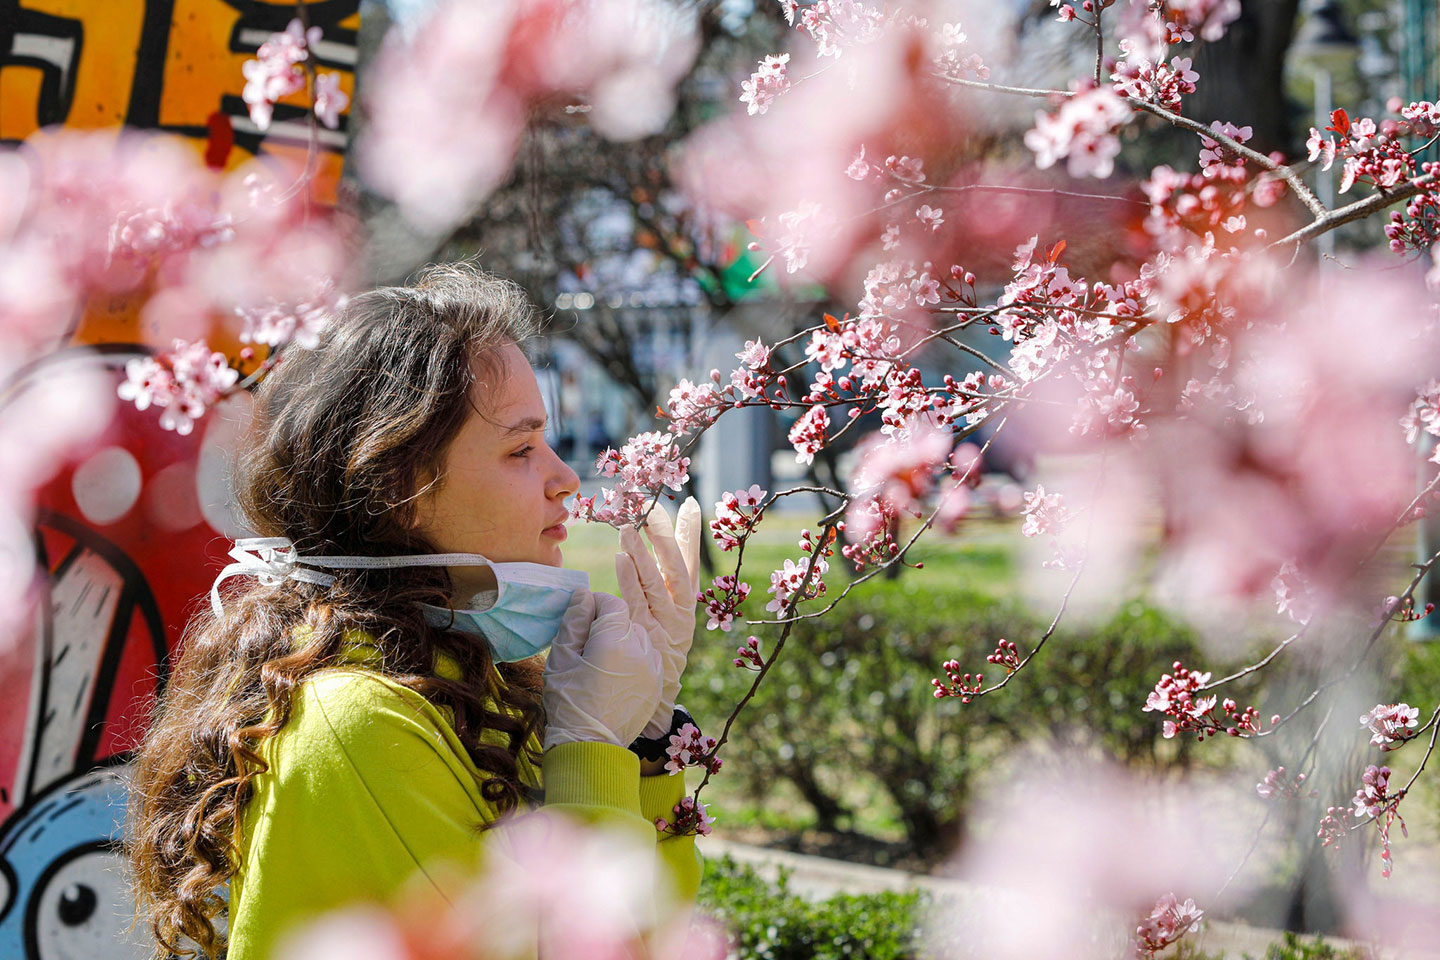 Image from the NYTimes article: A girl removed her mask to smell the flowers on a blooming tree in Skopje, North Macedonia, on Friday. Evidence is growing that lost sense of smell and taste are peculiar telltale signs of Covid-19, the disease caused by the coronavirus.Credit...Ognen Teofilovski/Reuters